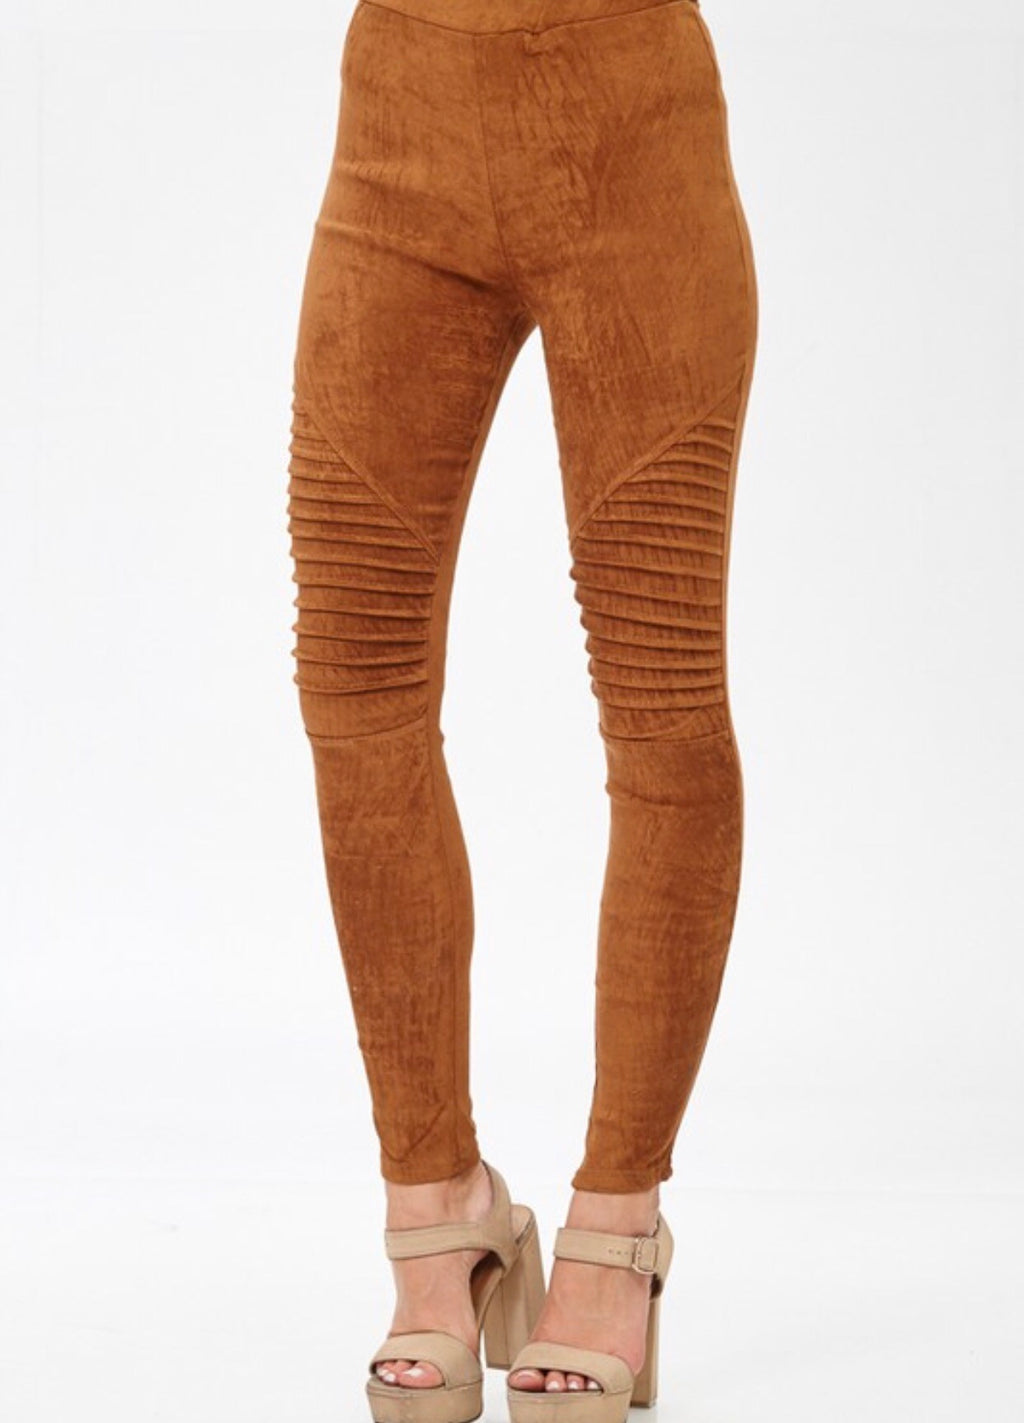 The Izzy Pant in Camel